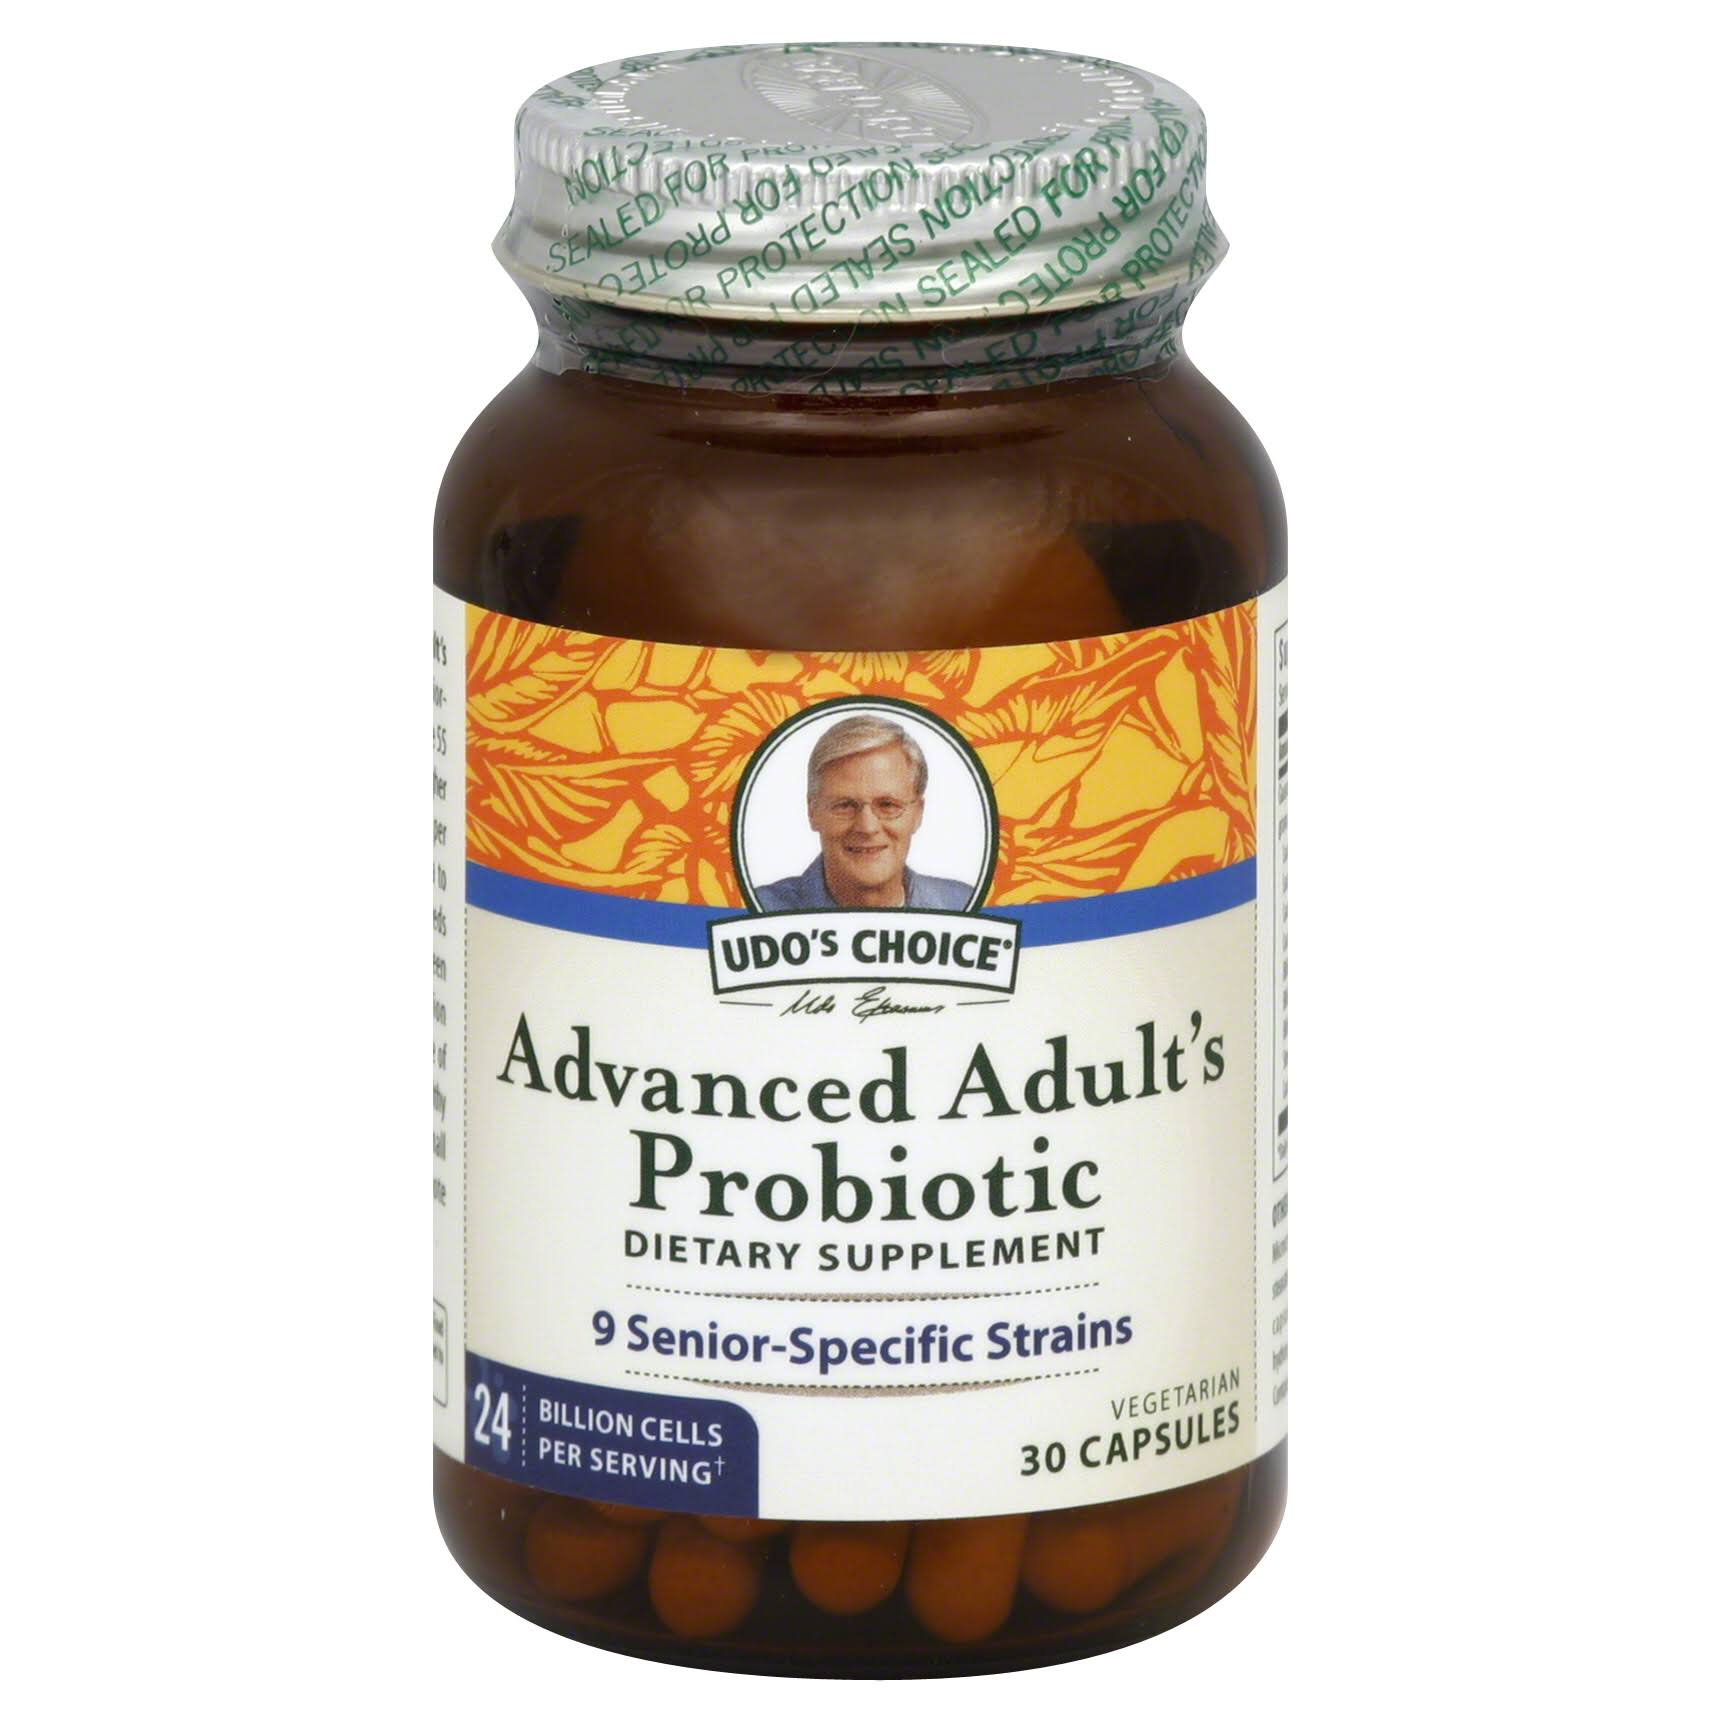 Flora Udo's Choice Advanced Adult's Probiotic